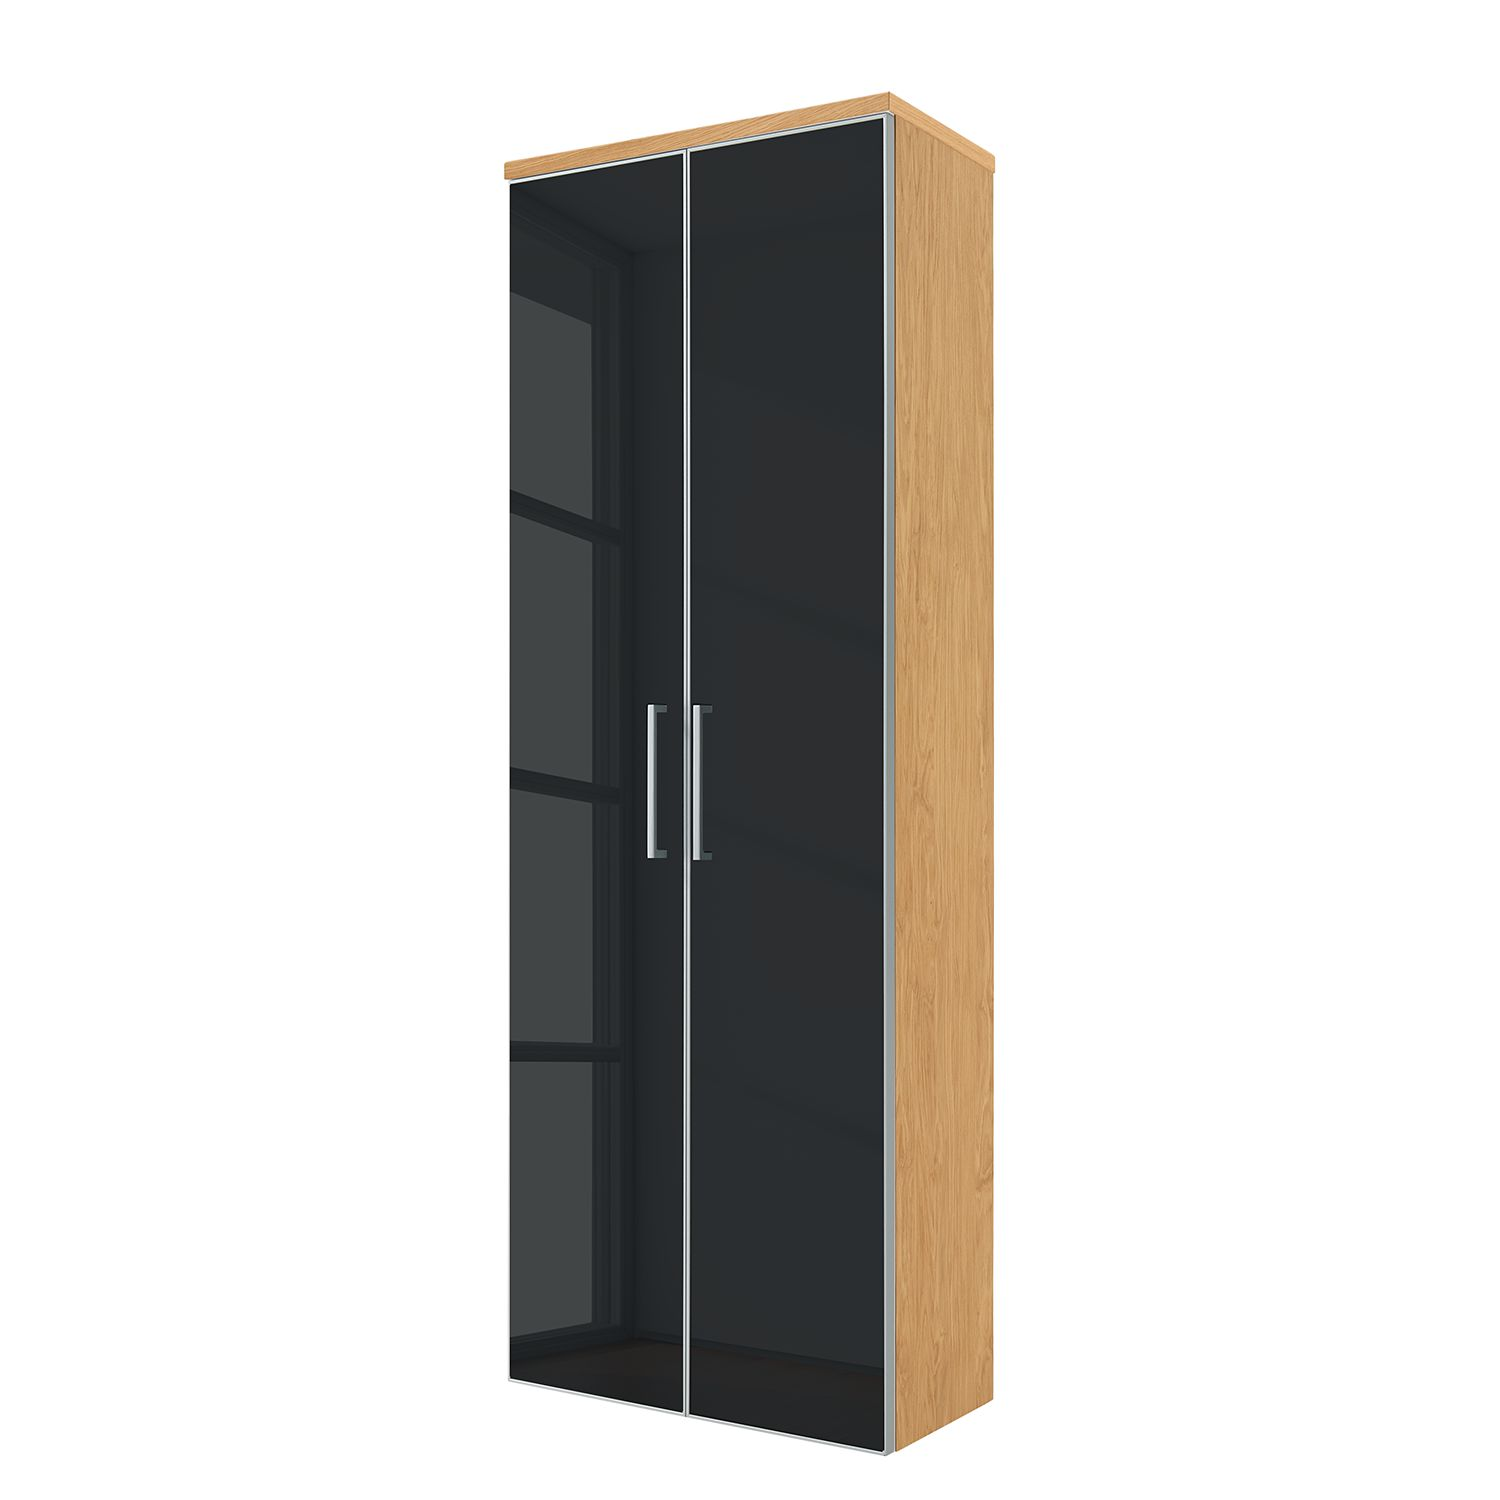 Armoire murale Alavere - Anthracite / Chêne bianco, Voss